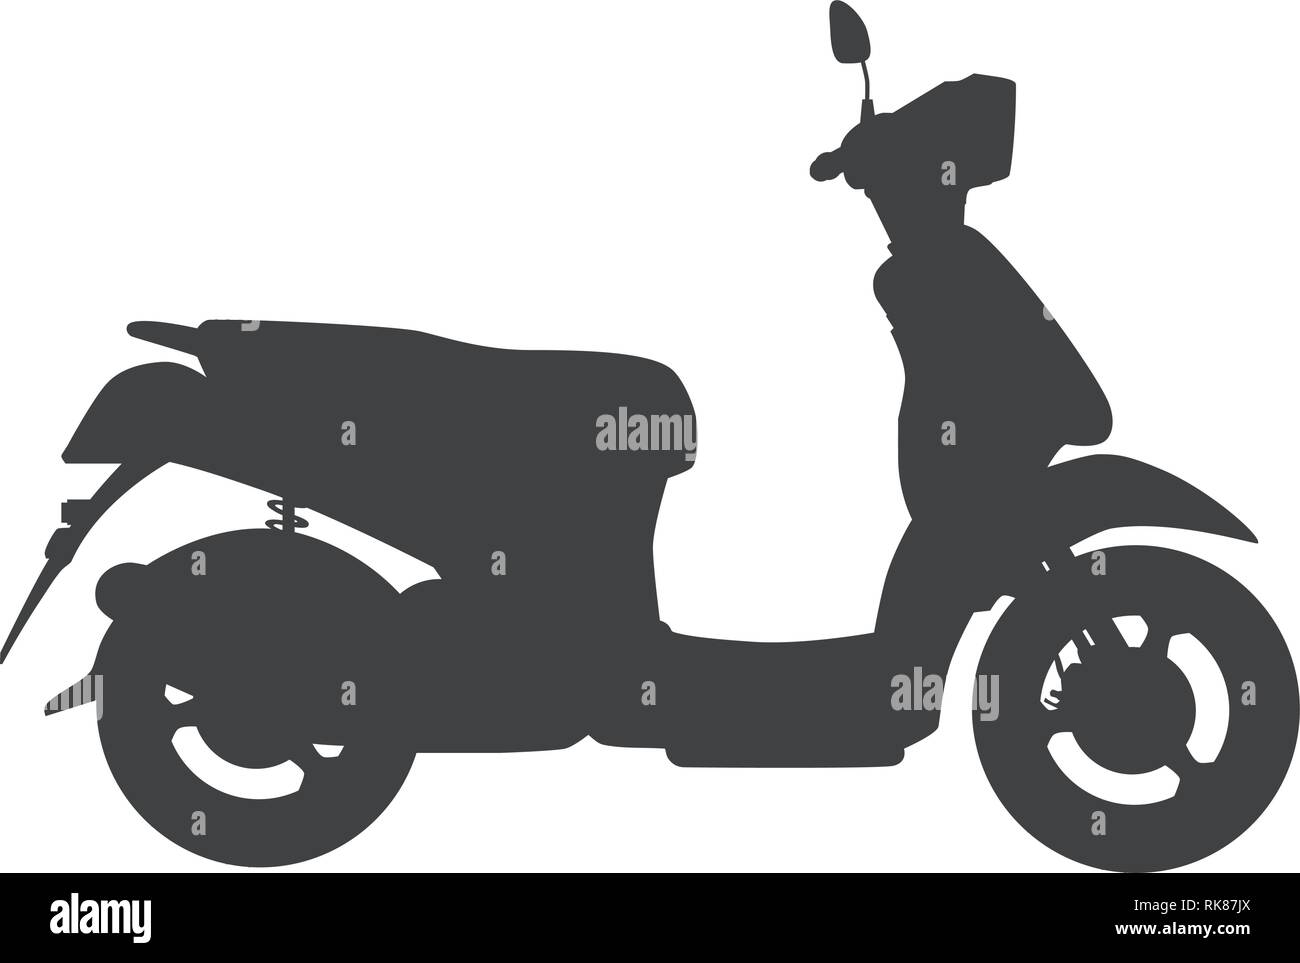 silhouette of scooter scooter vector icon sign or symbol stock vector image art alamy https www alamy com silhouette of scooter scooter vector icon sign or symbol image235594882 html